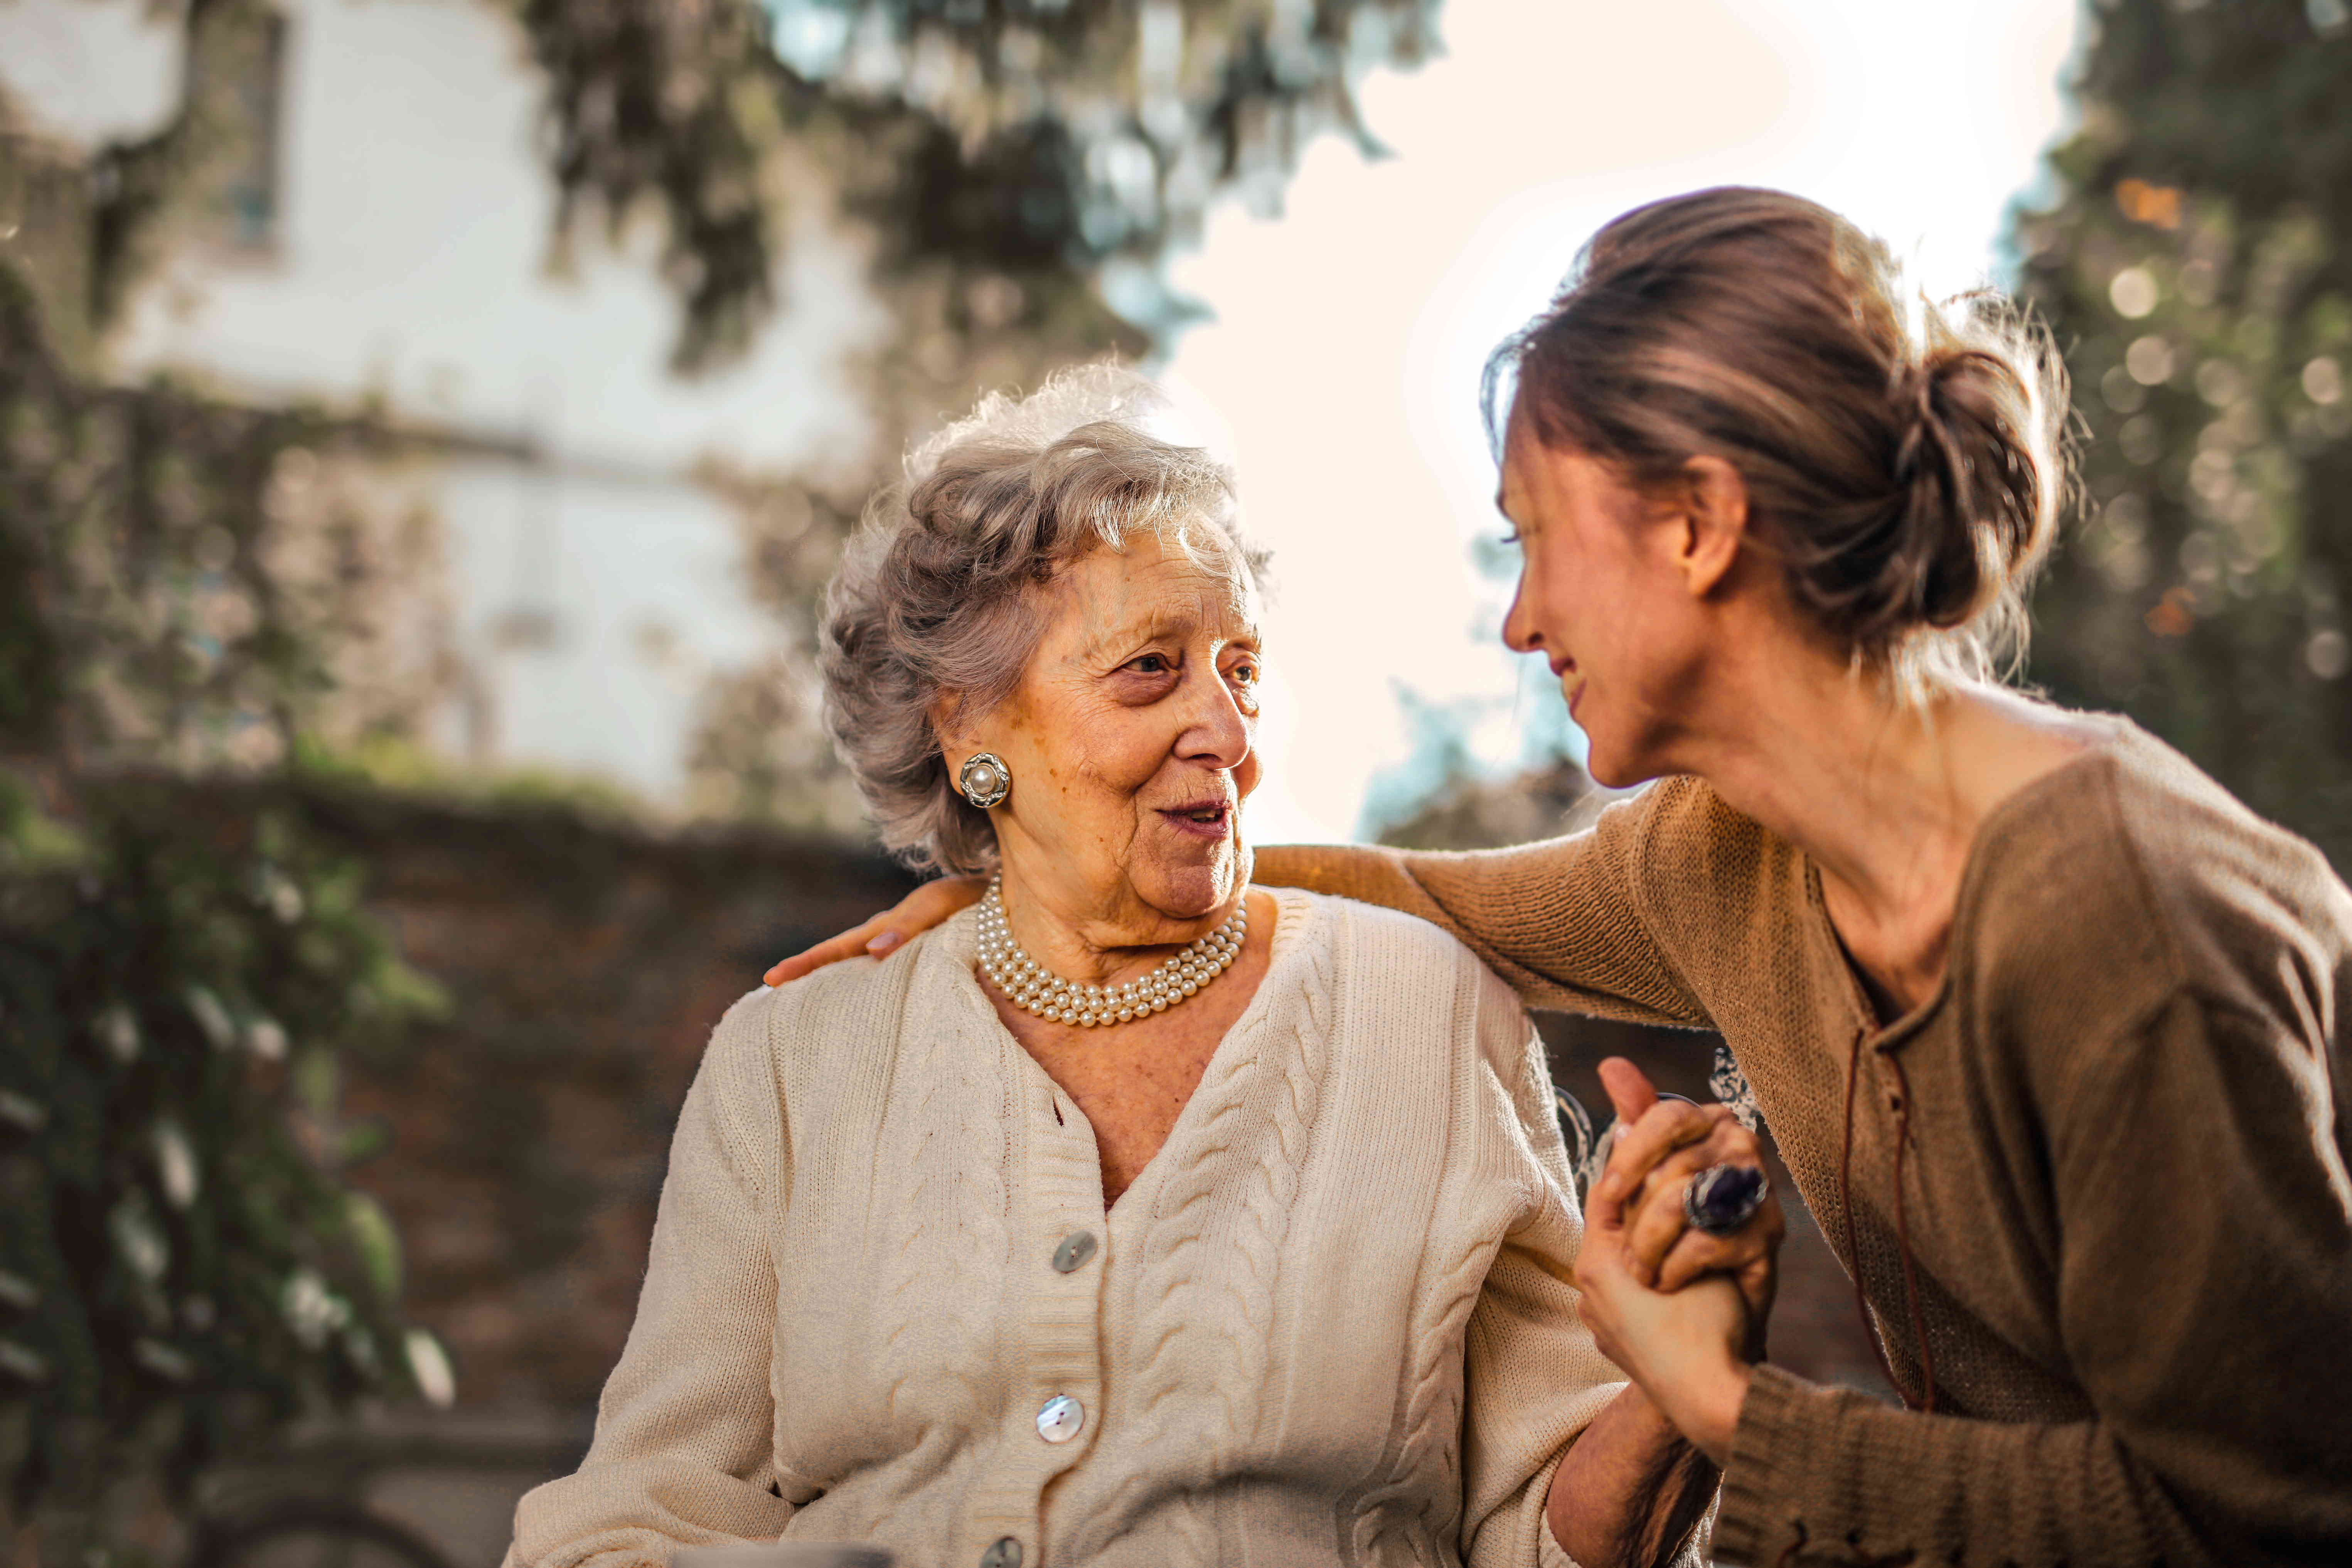 The Benefits of Private Home Care You May Not Know About